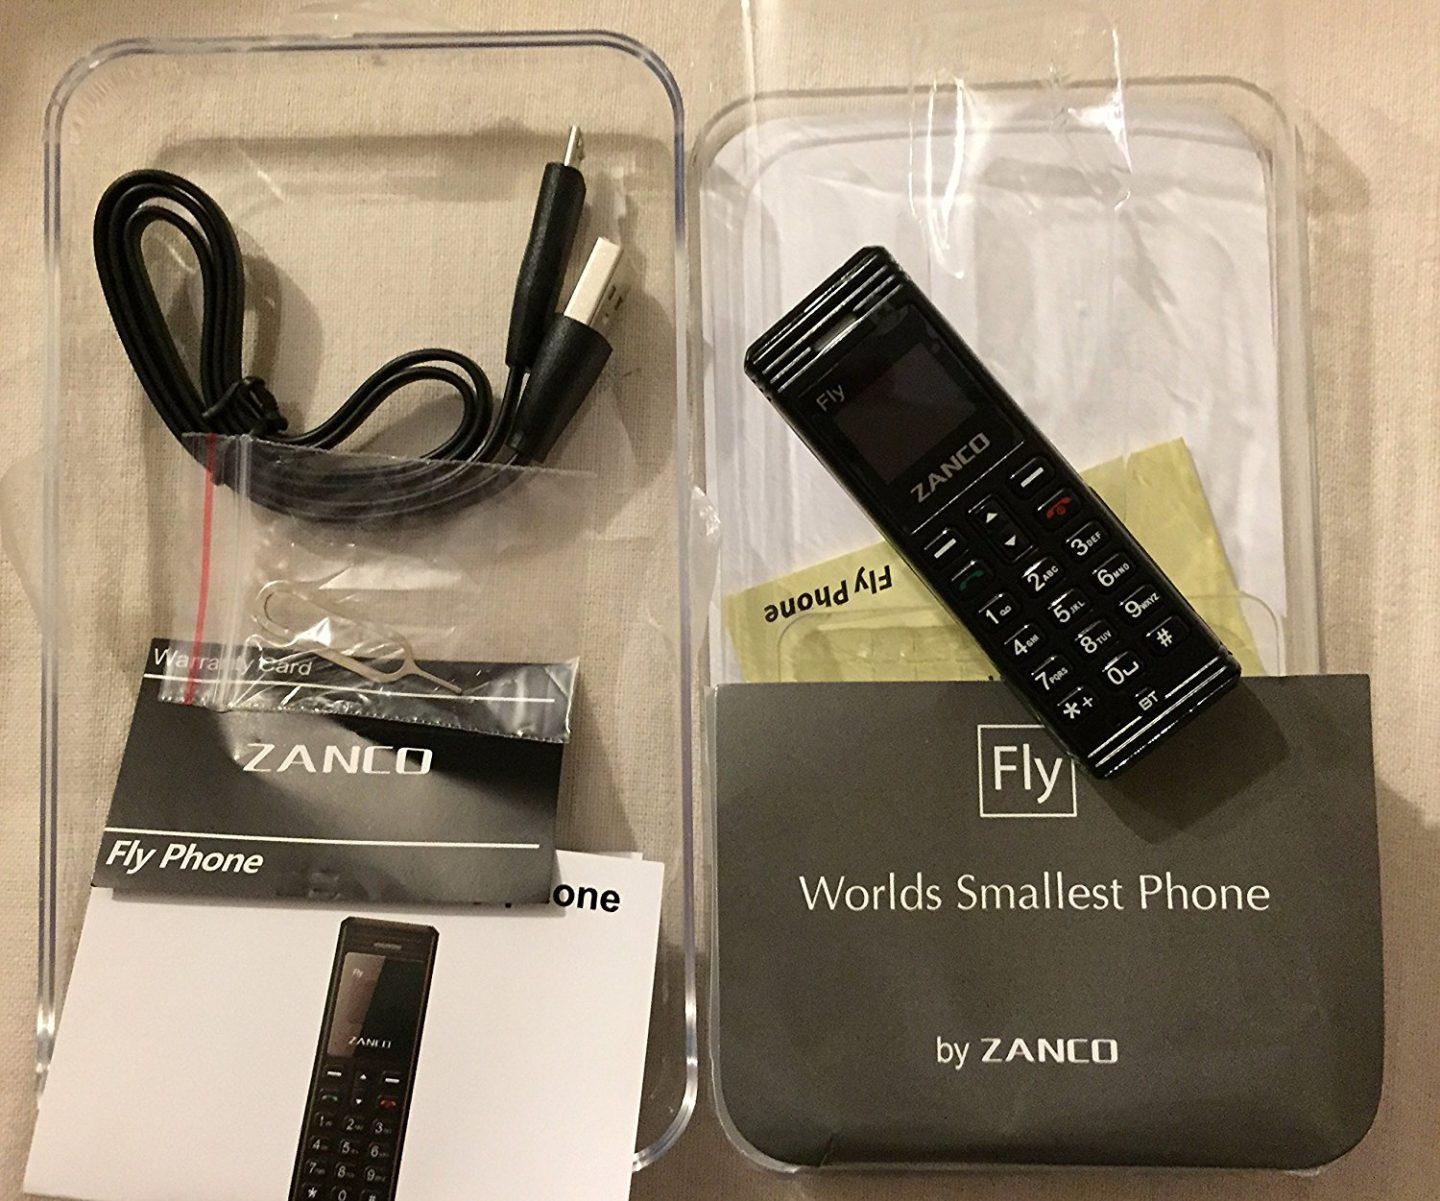 zanco mobile phone